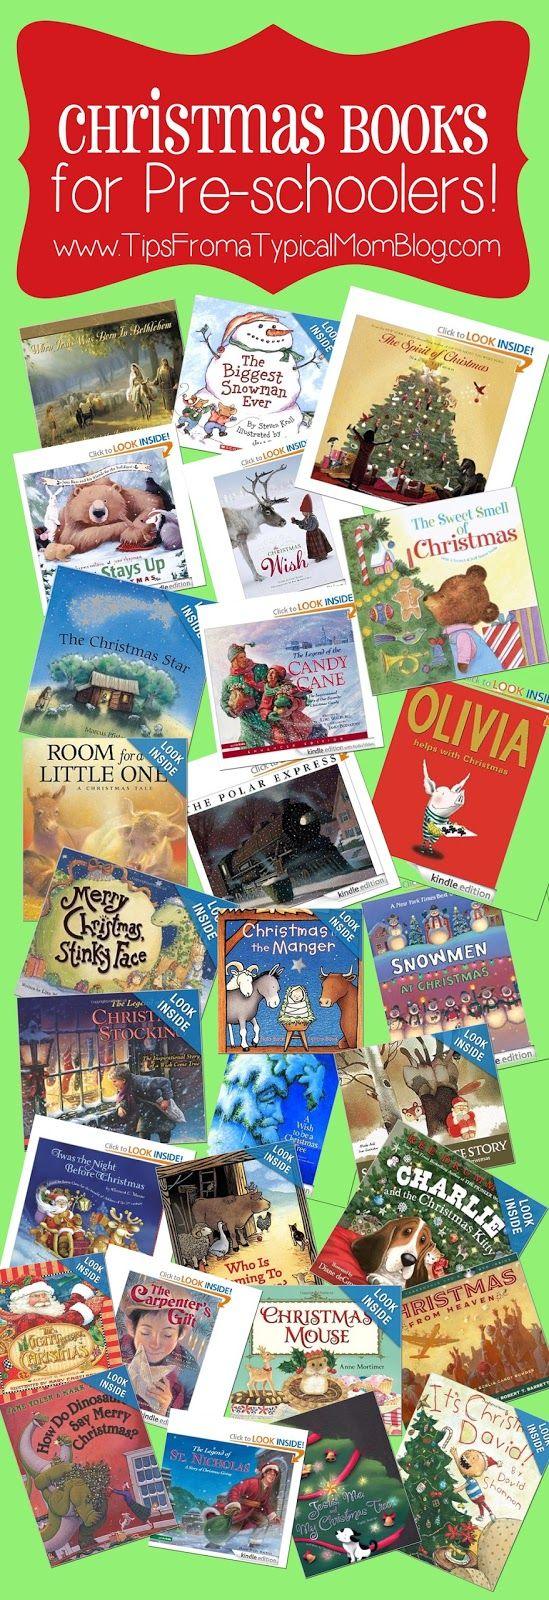 25+ Preschool Christmas Book List.  This is an awesome list of books to read with your preschooler.  The list includes religious and non-religious books too. #christmasbooklist #christmas